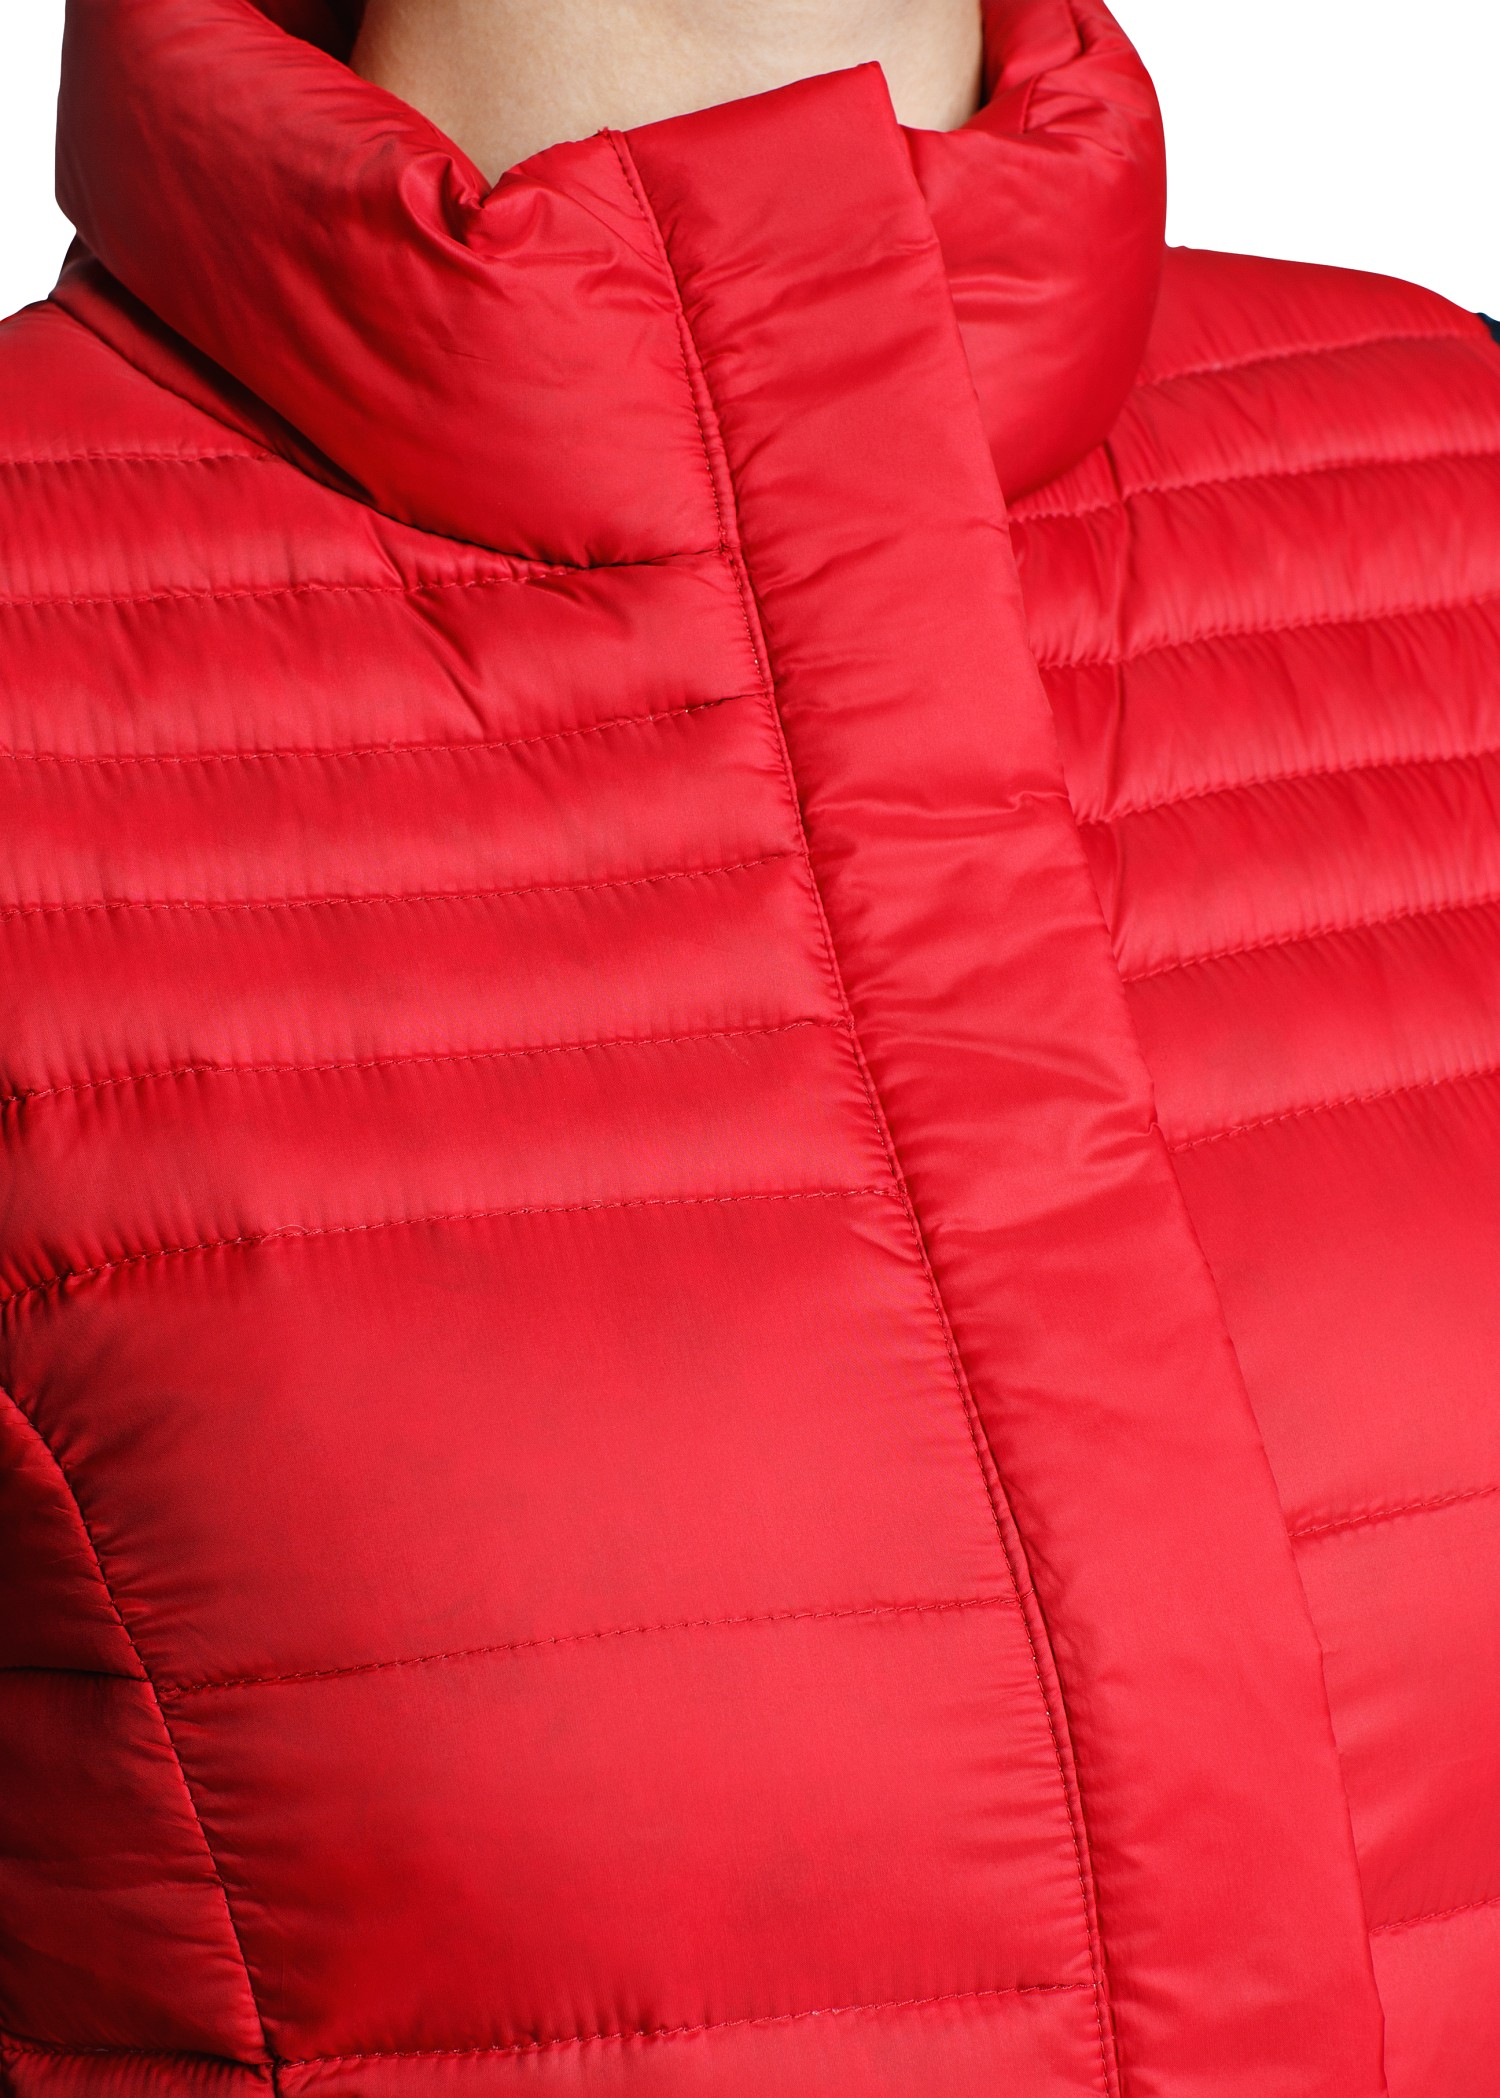 Mango Foldable Down Feather Gilet In Red Lyst